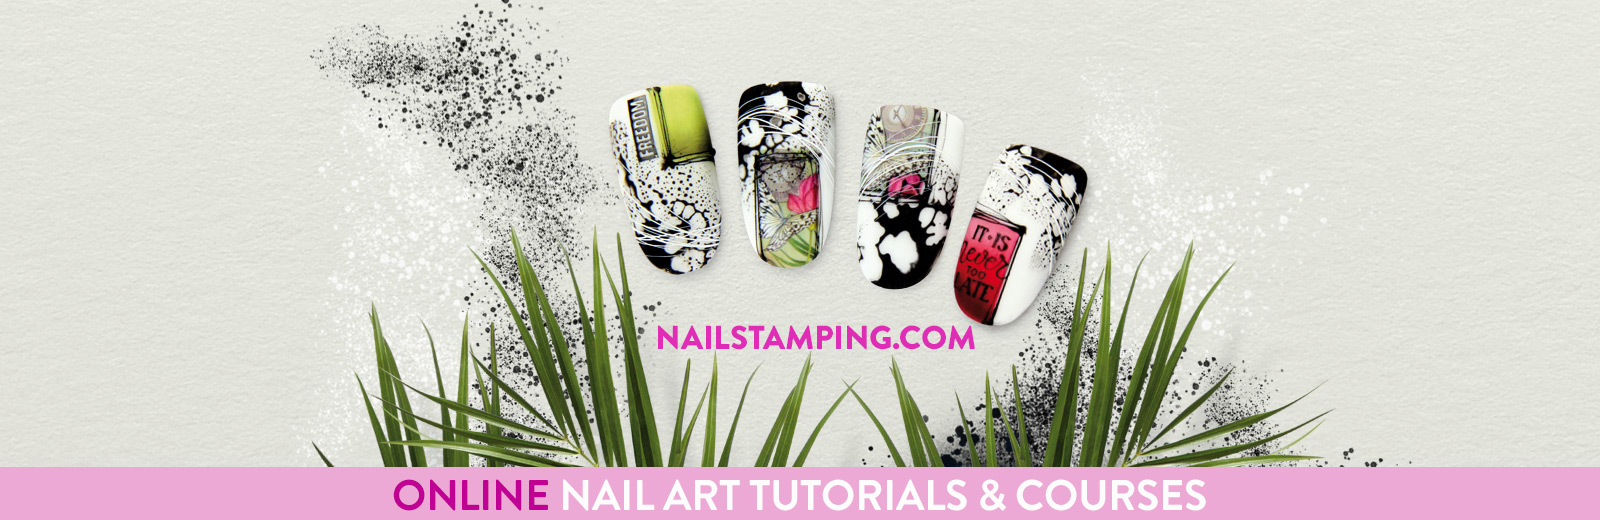 Online Nail Art Tutorials & Courses